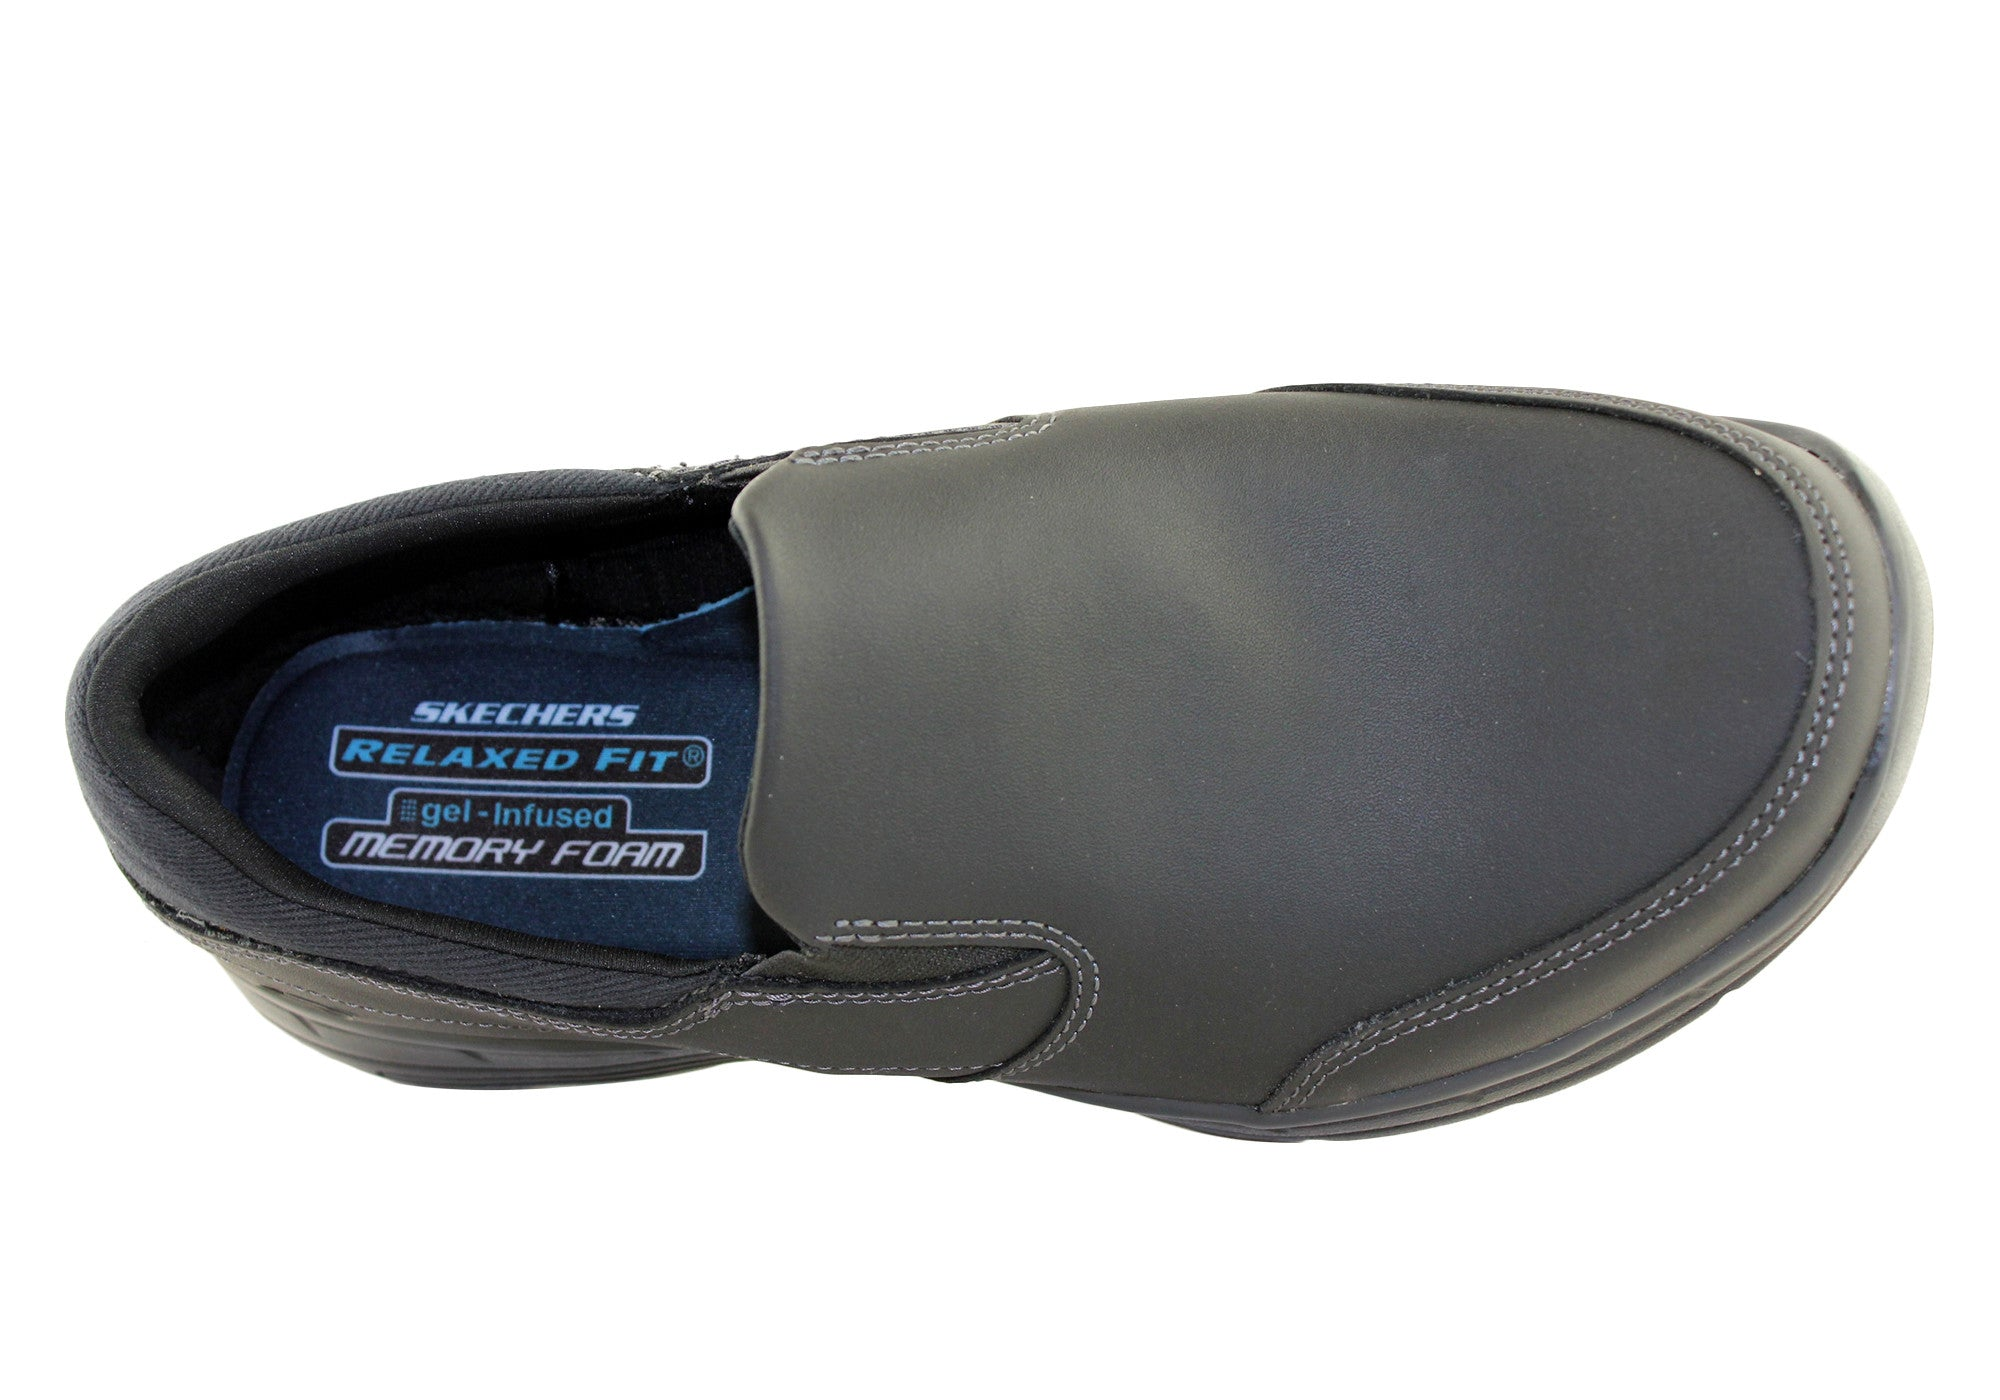 Skechers Mens Glides Calculous Relaxed Fit Shoes